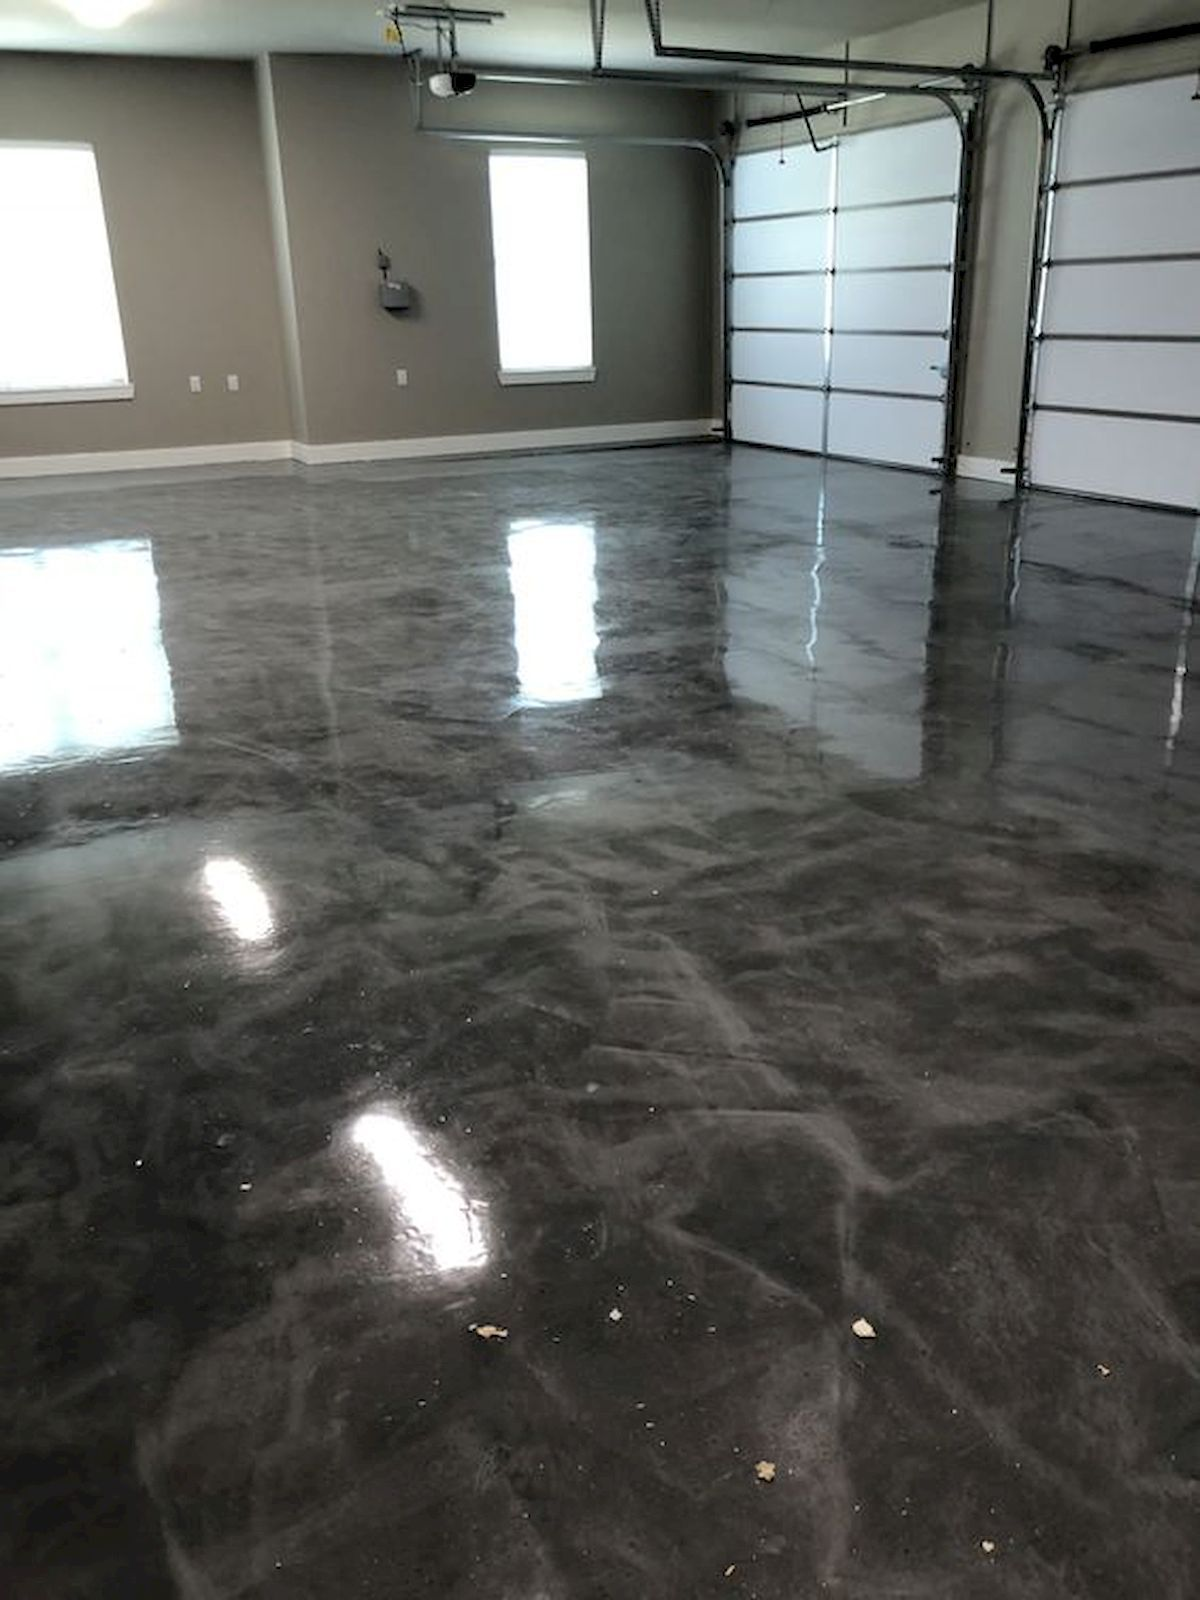 20 Best Garage Floor Ideas Garageideas One Of The Problems Though Is That There Are Actually Quite A Numbe Garage Tile Garage Floor Paint Garage Floor Plans